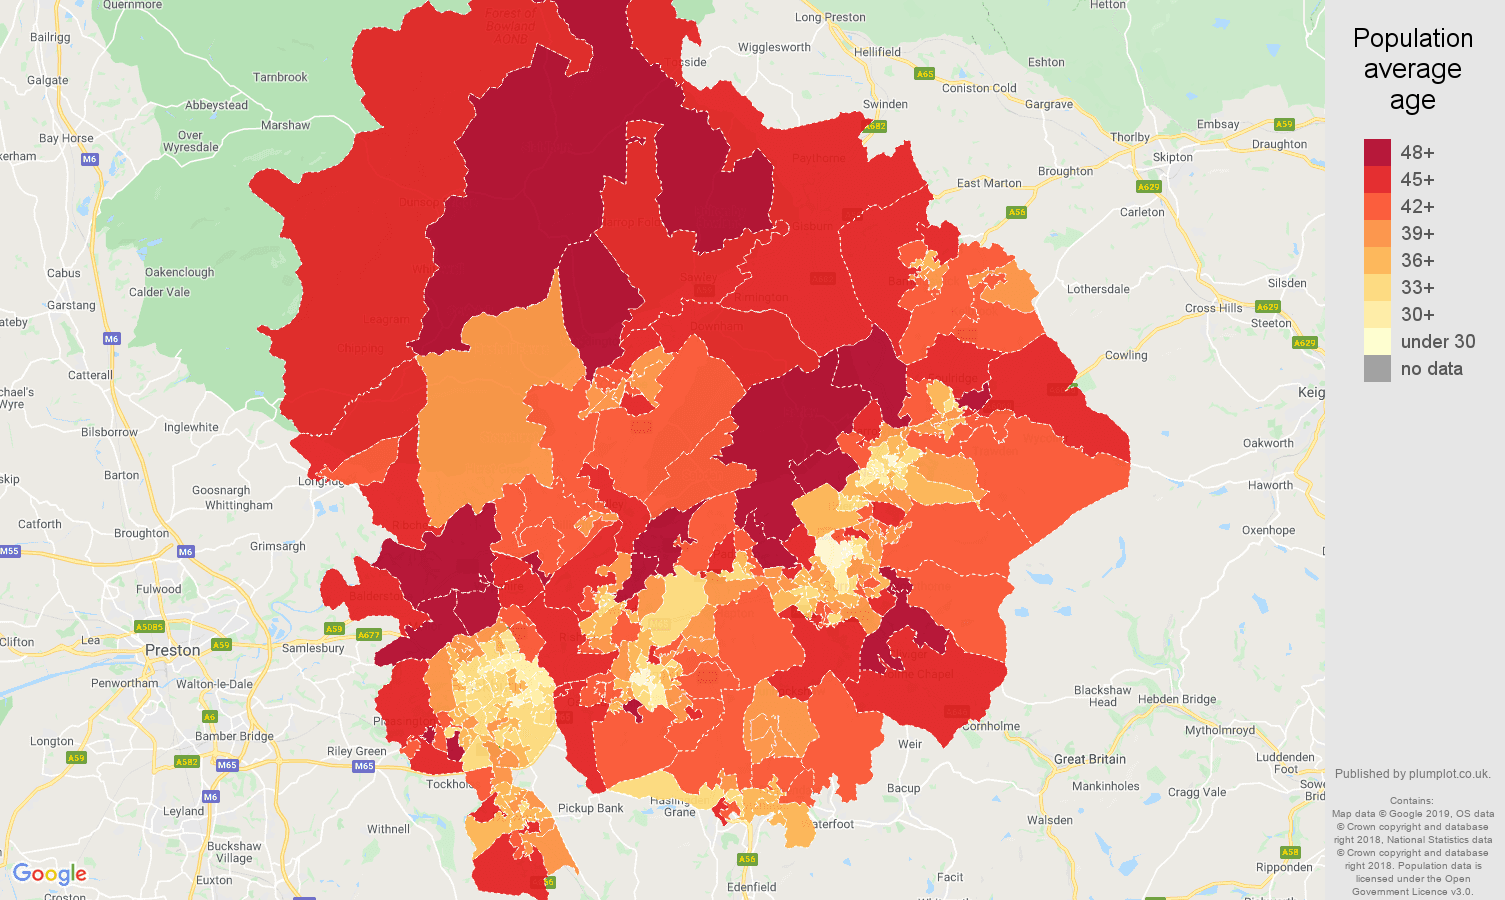 Blackburn population average age map